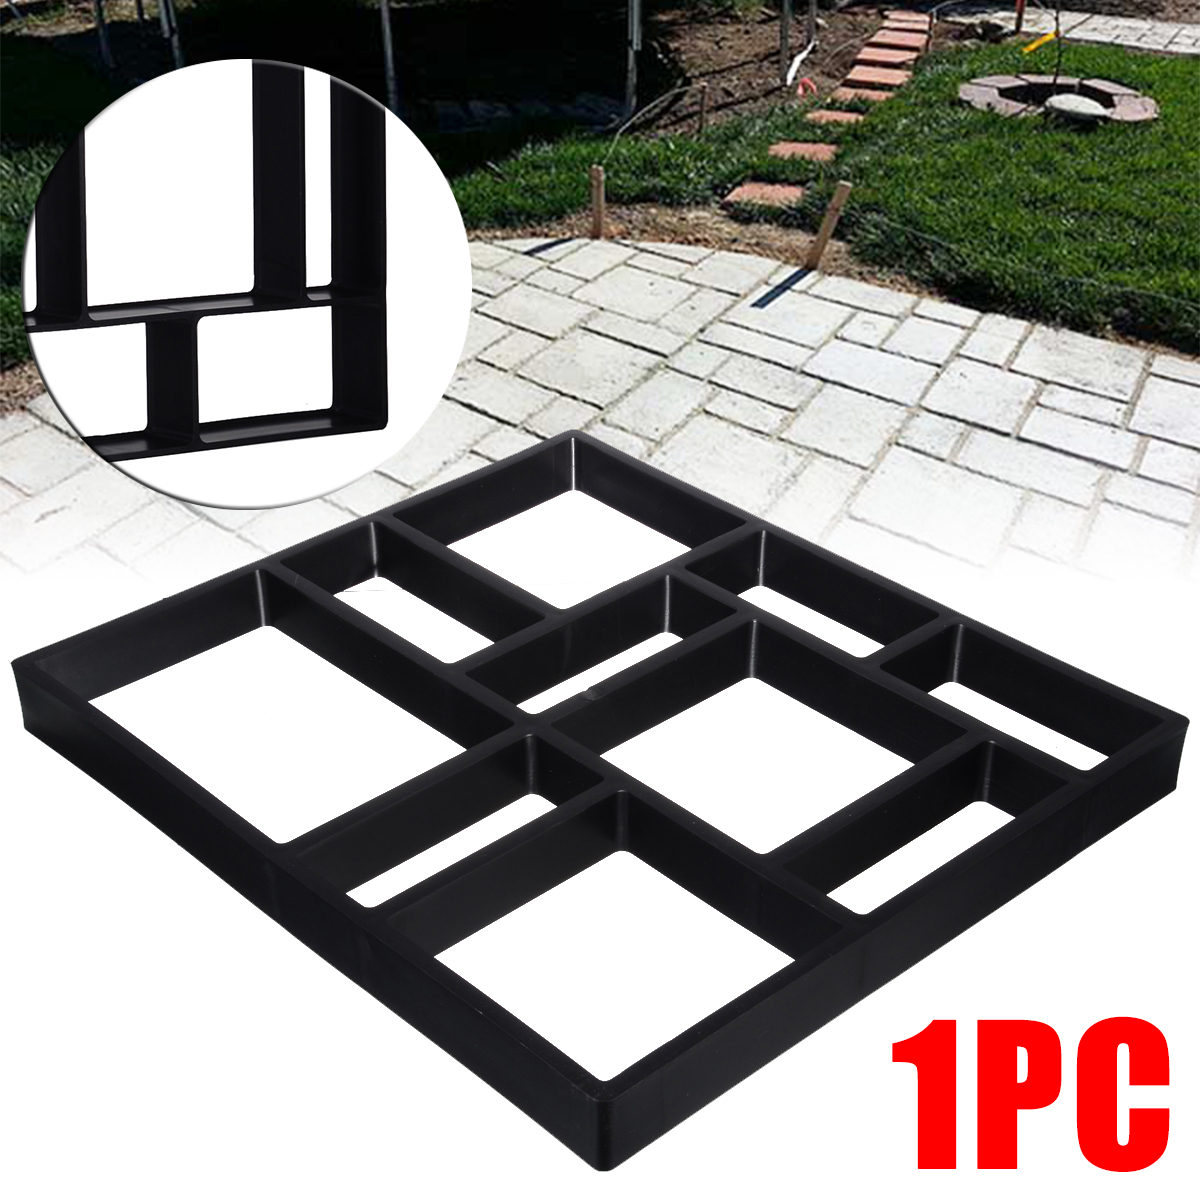 DIY Garden Pavement Mold Garden Walk Pavement Concrete Mould Paving Cement Brick Stone Road Path Maker 45*40cm-in Garden Floor Boards from Home & Garden